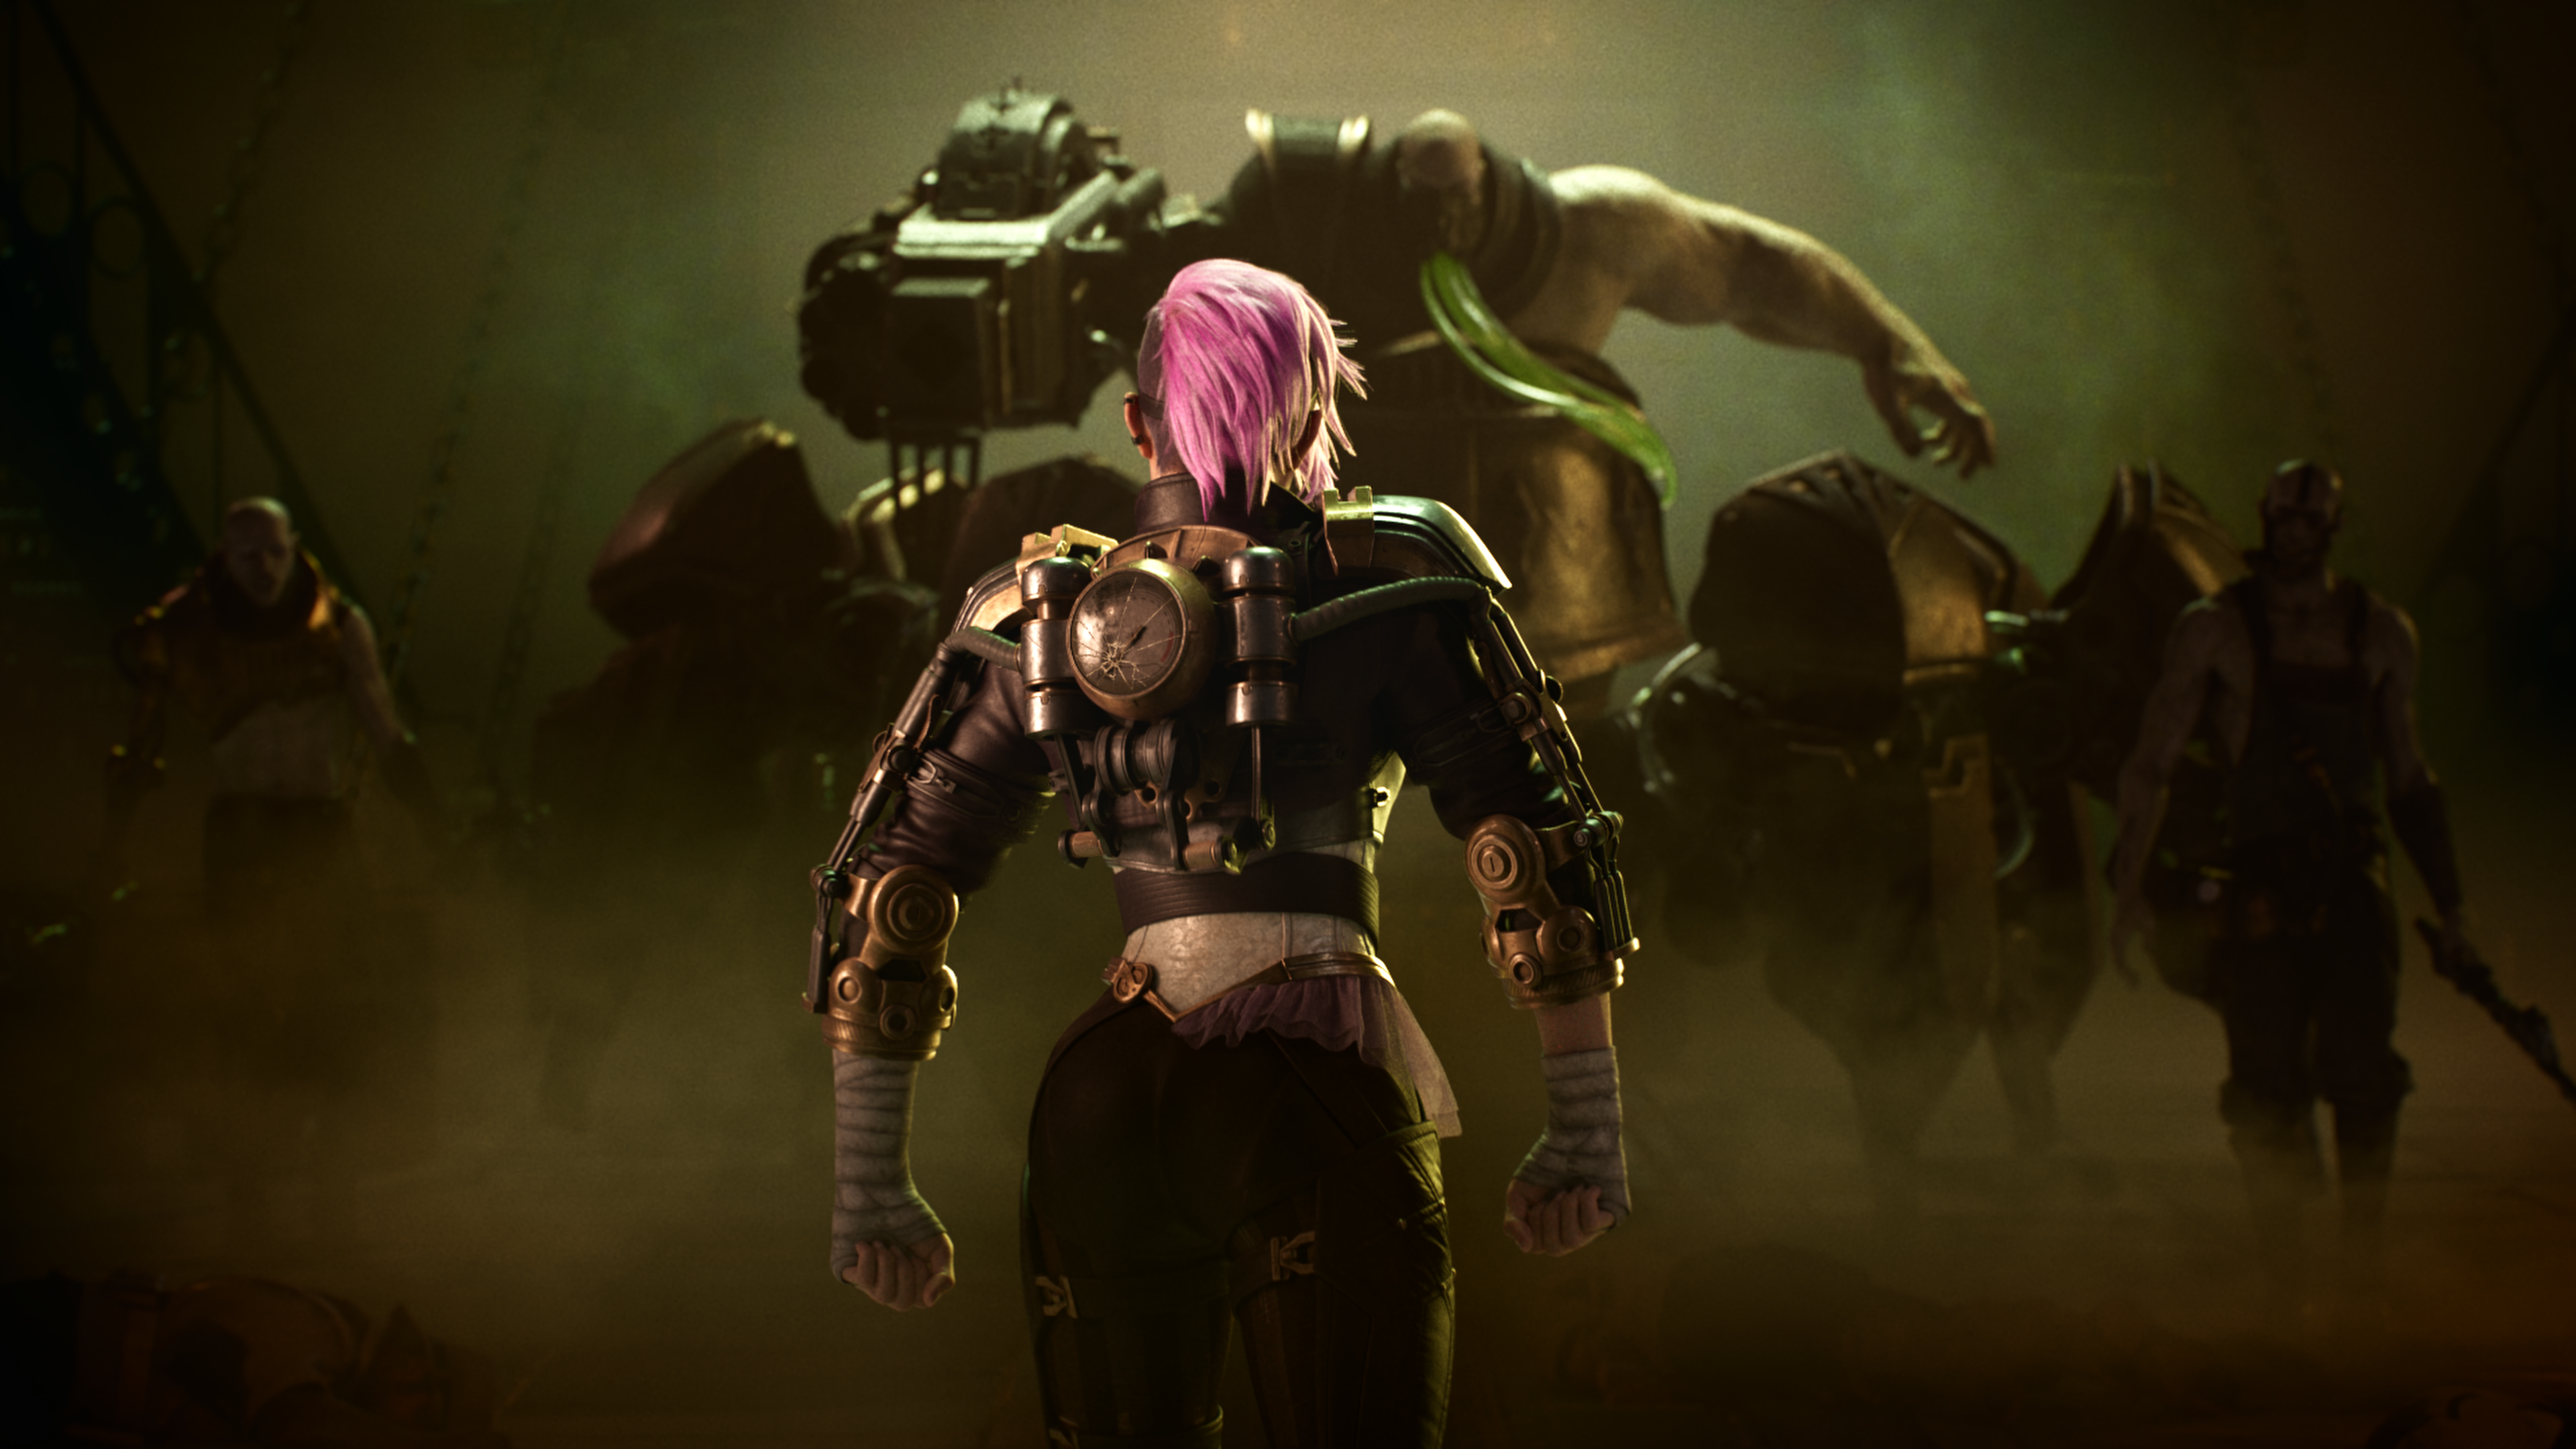 Vi faces down Urgot in the 2020 League of Legends ranked video set to Warriors